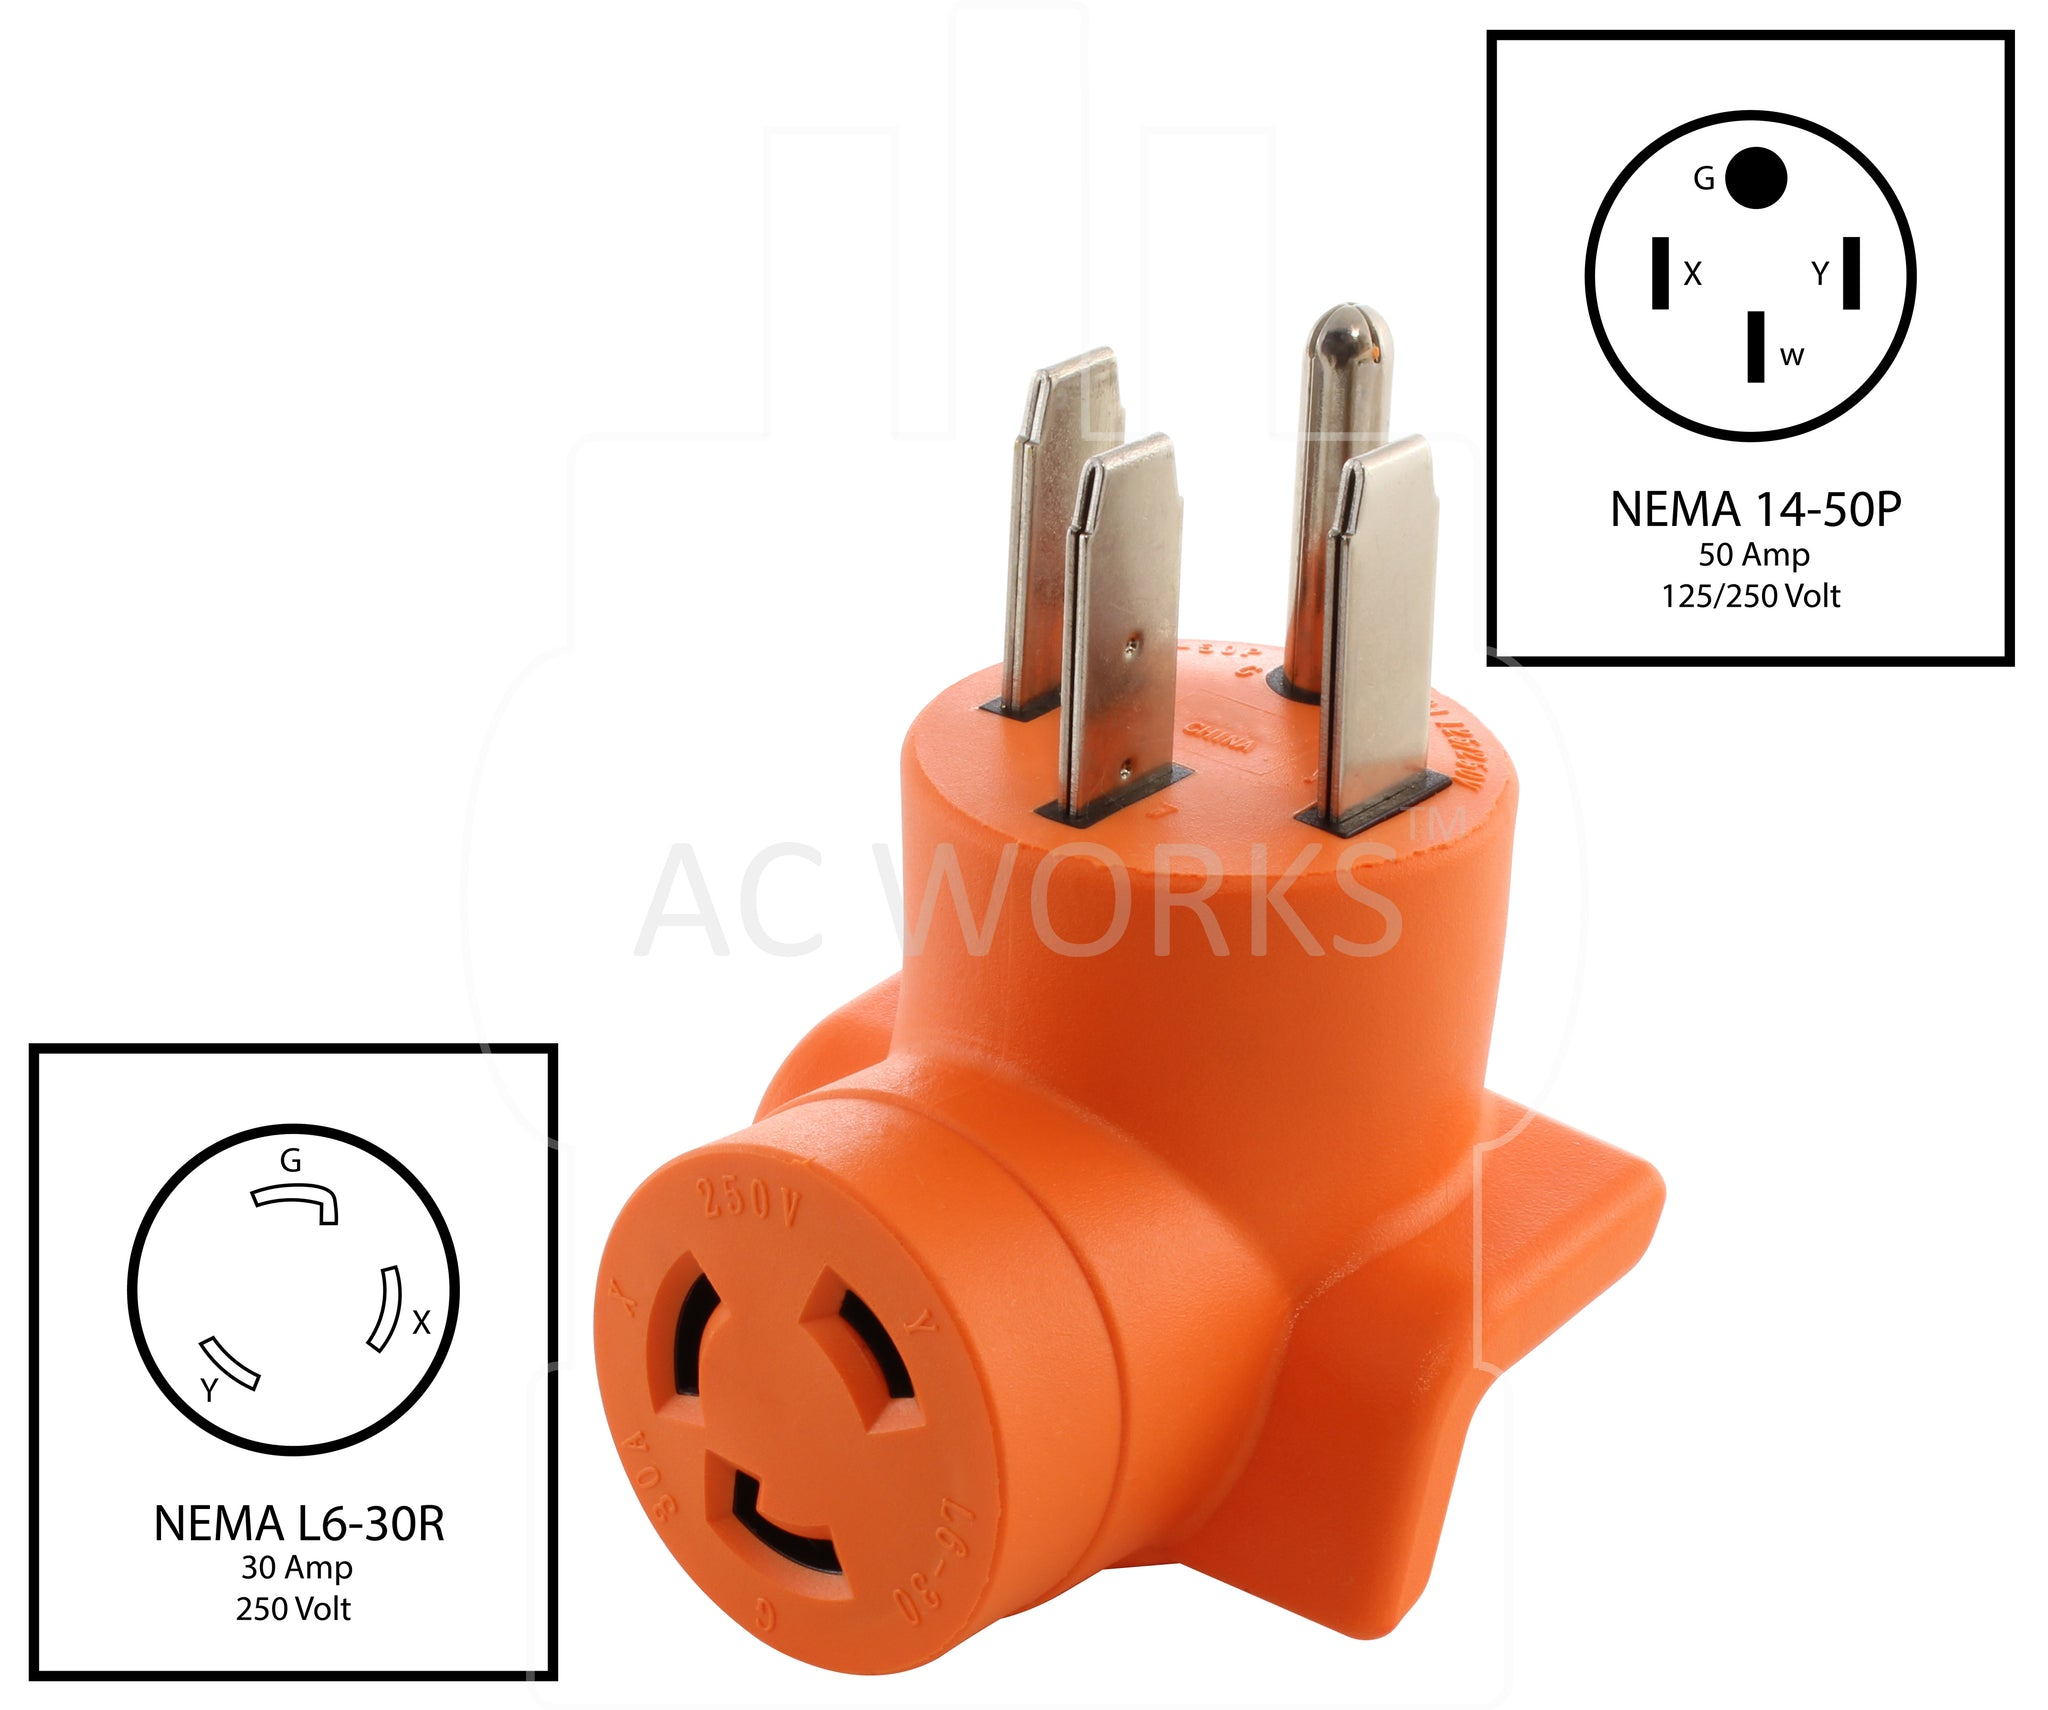 Locking Adapter Generator Rv Range 14 50p Plug To L6 30r 250volt Wiring A 50 Amp Outlet For Stove Ac Works Nema 4 Prong